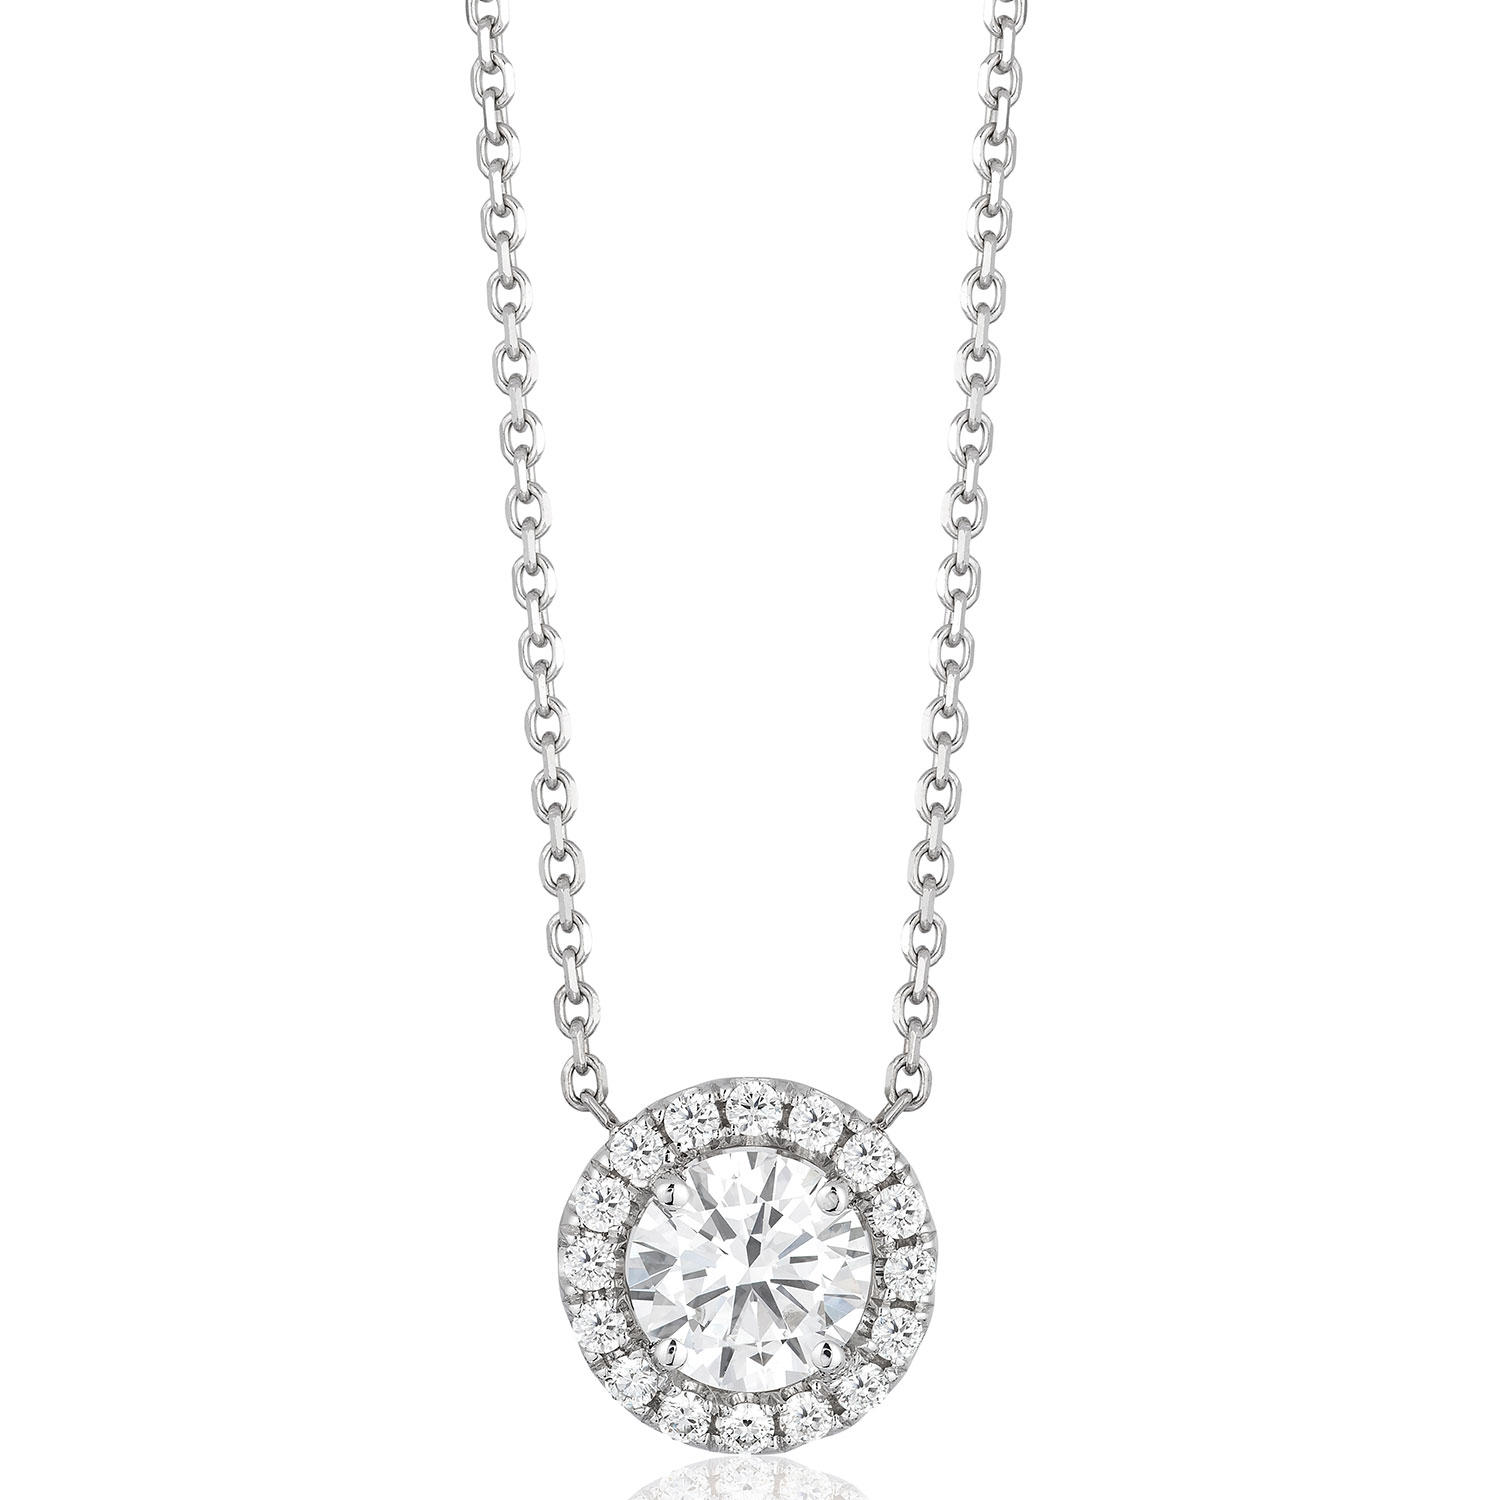 Superior Quality Collection 0.60 CT. T.W. Round Diamond Pendant